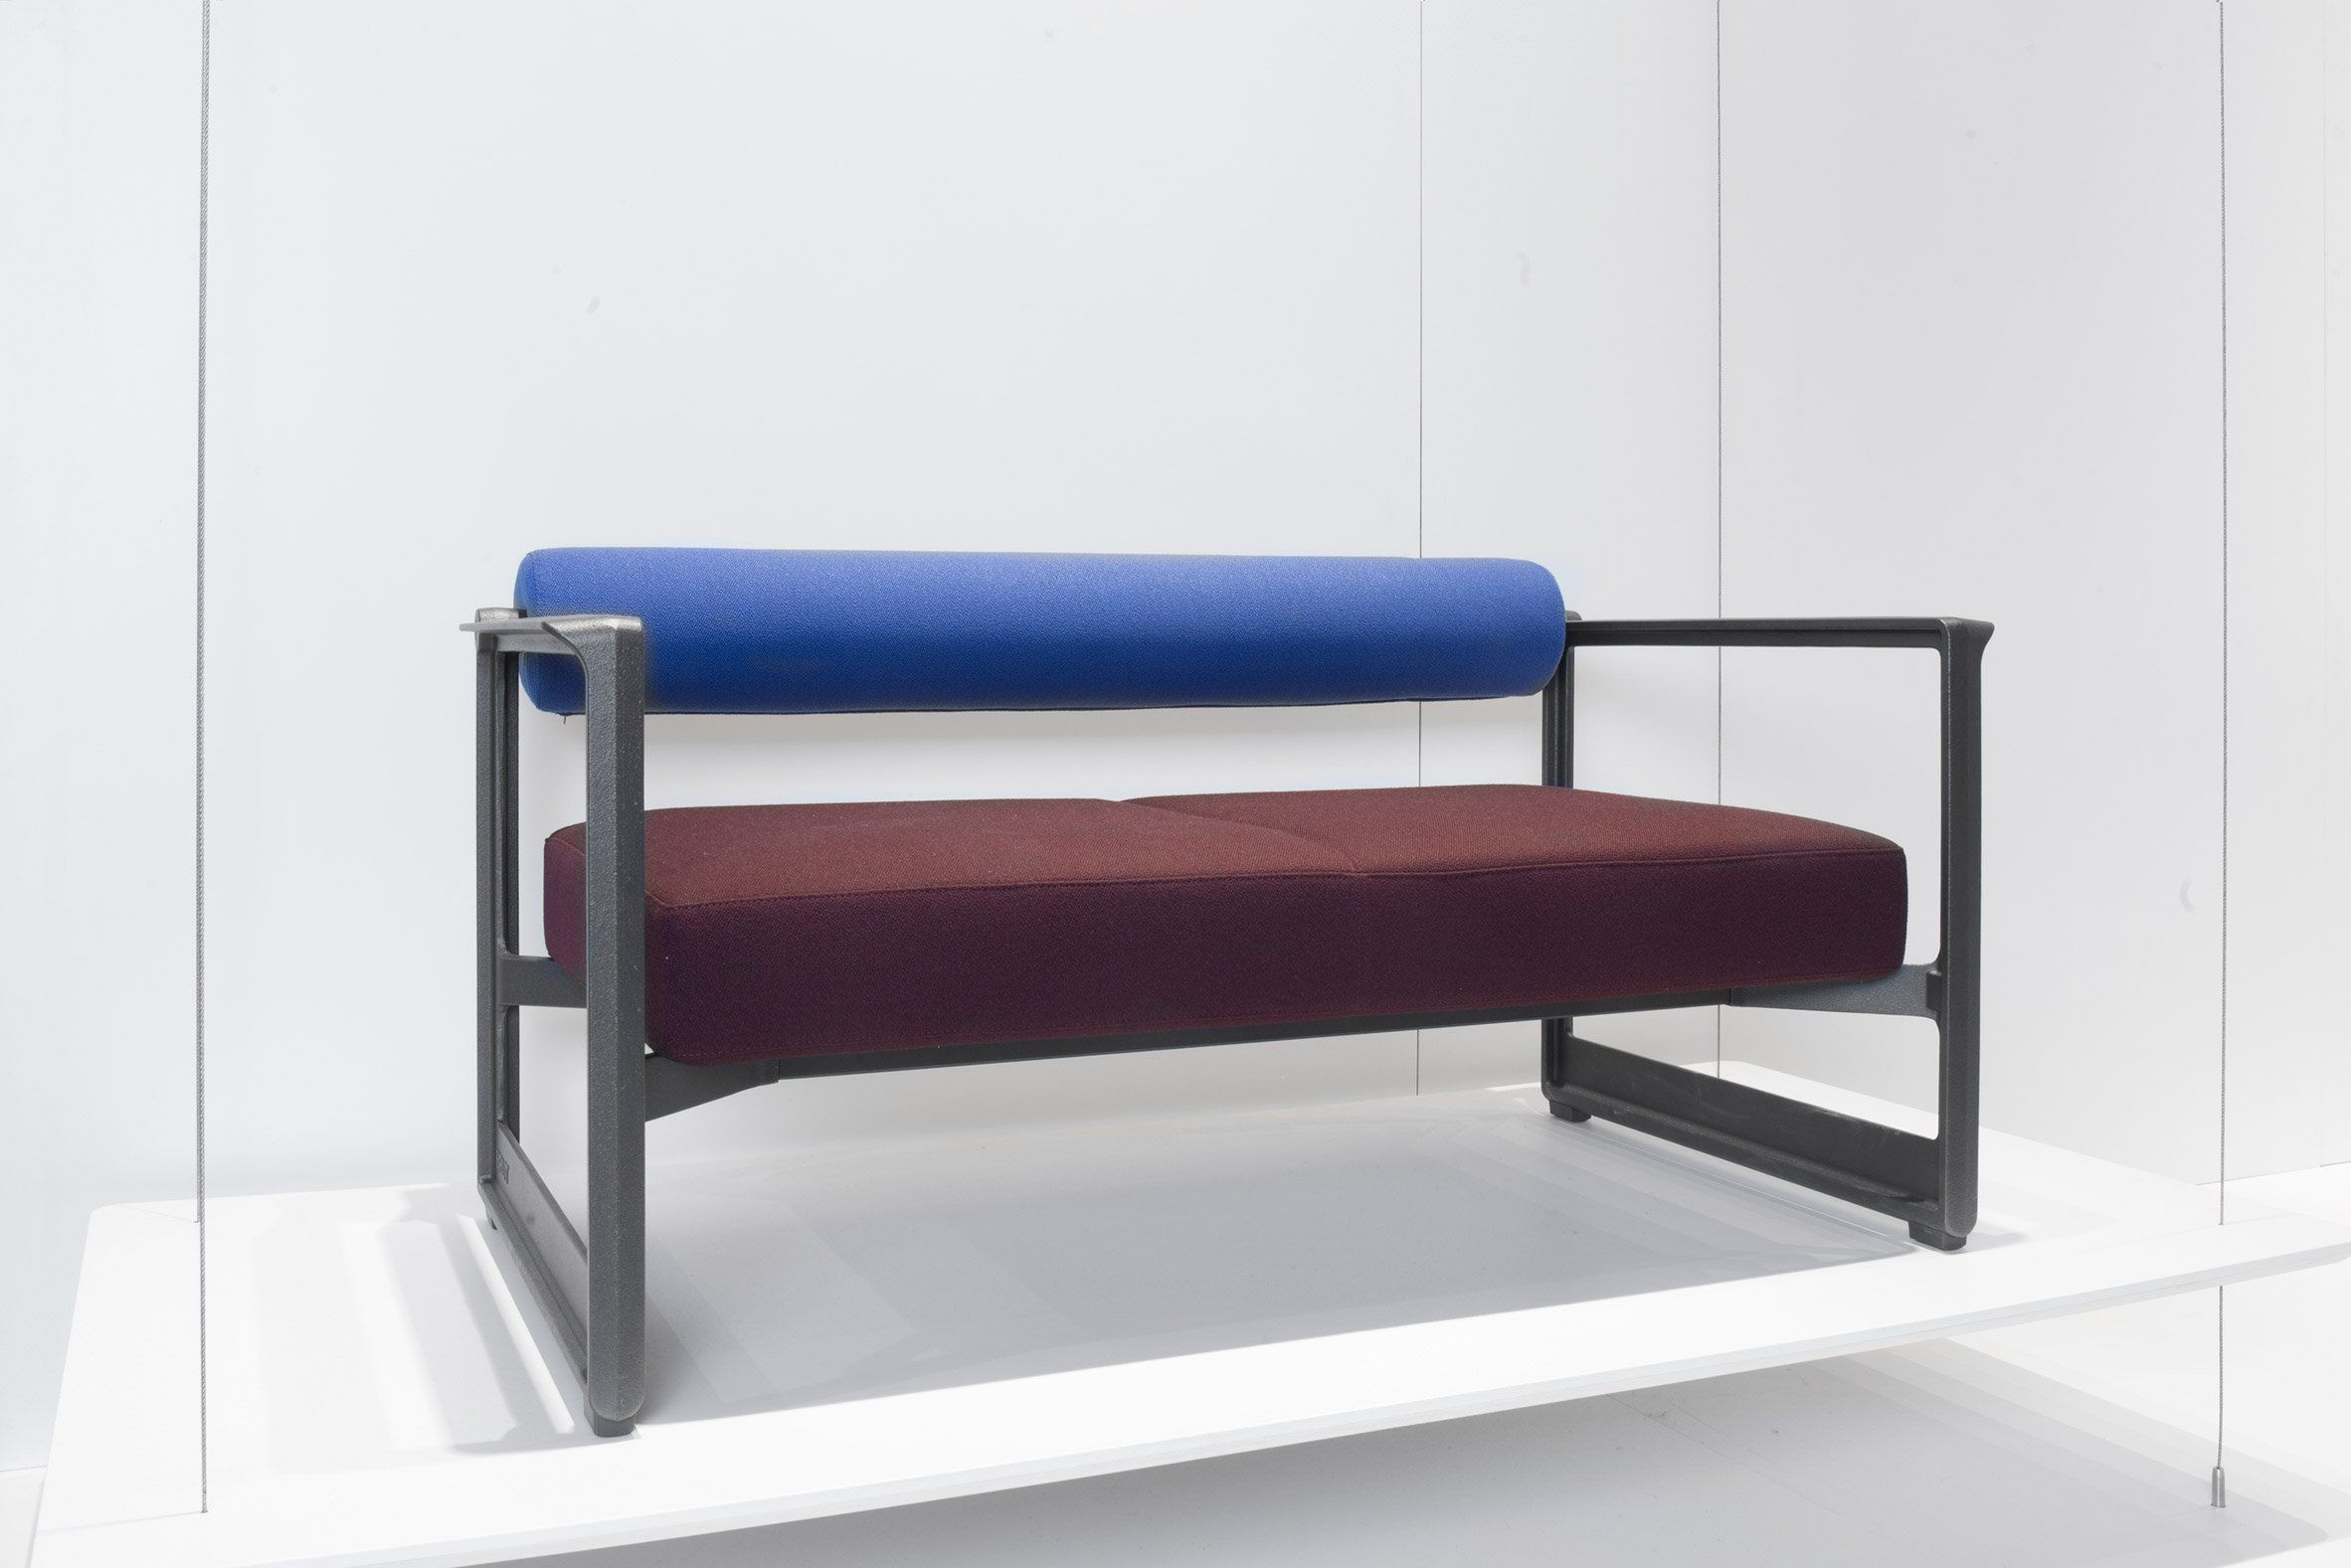 German designer Konstantin Grcic has created a sofa with machinery ...